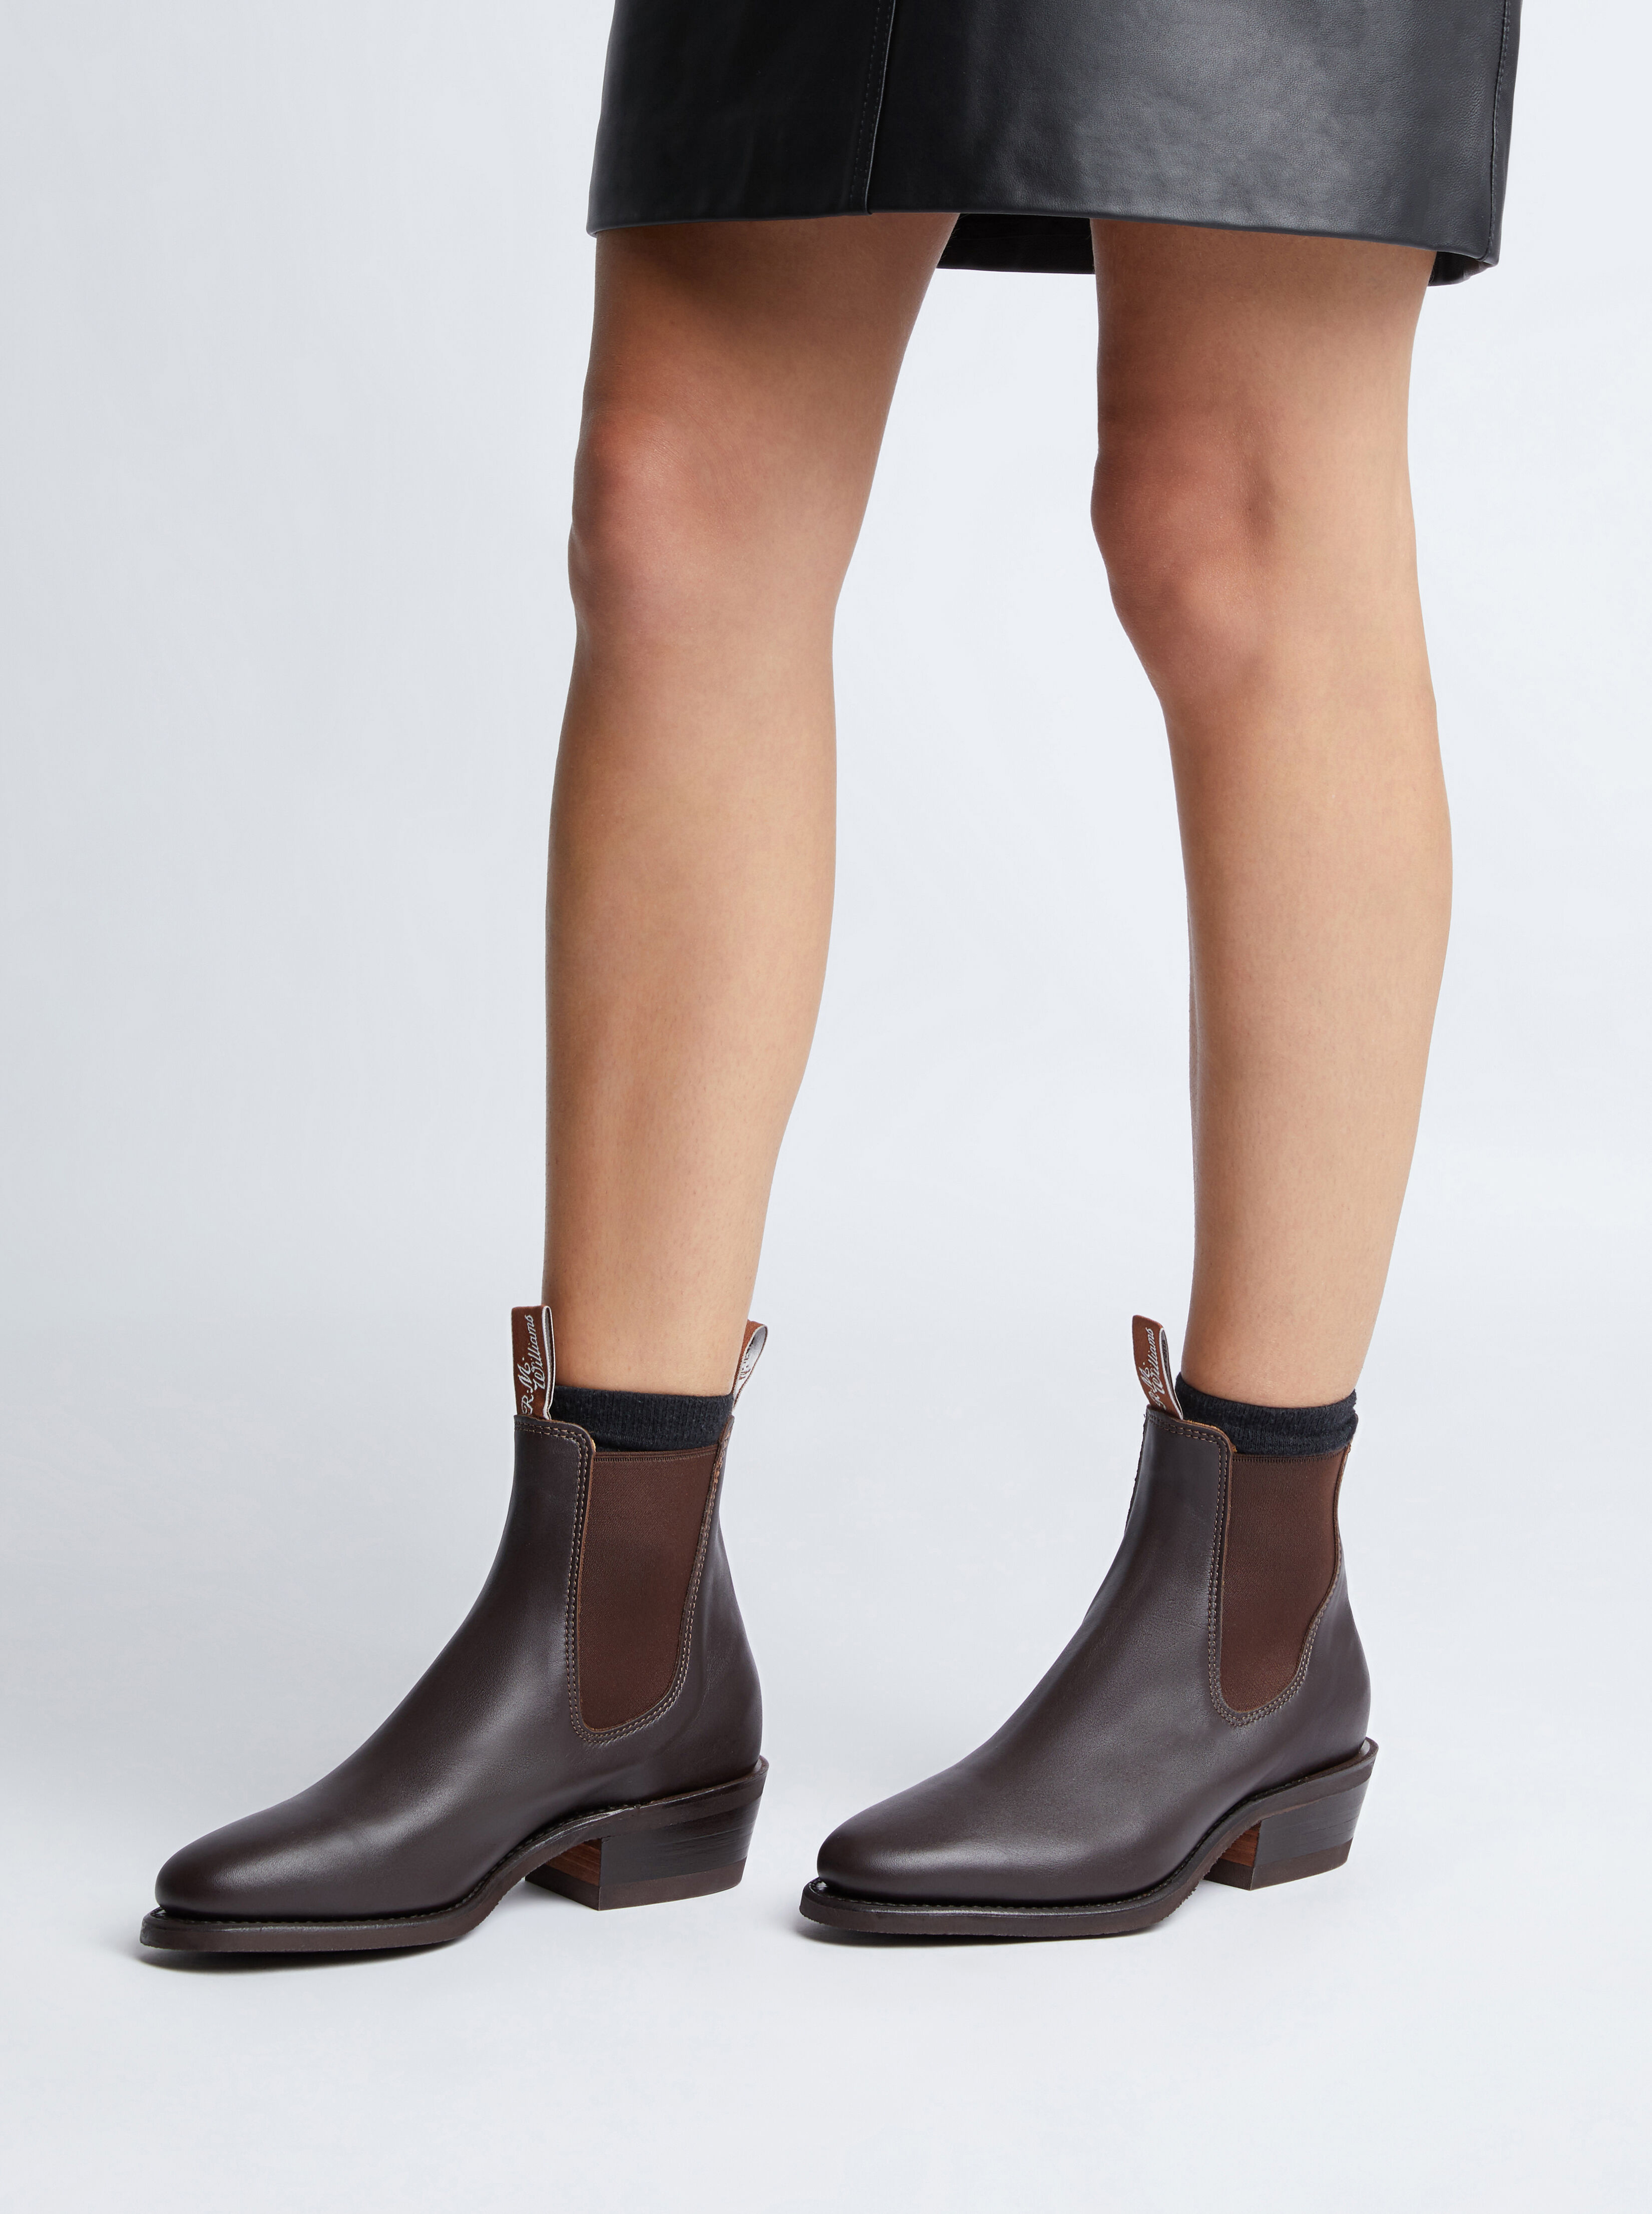 Lady Yearling Boot Women's Boots at R